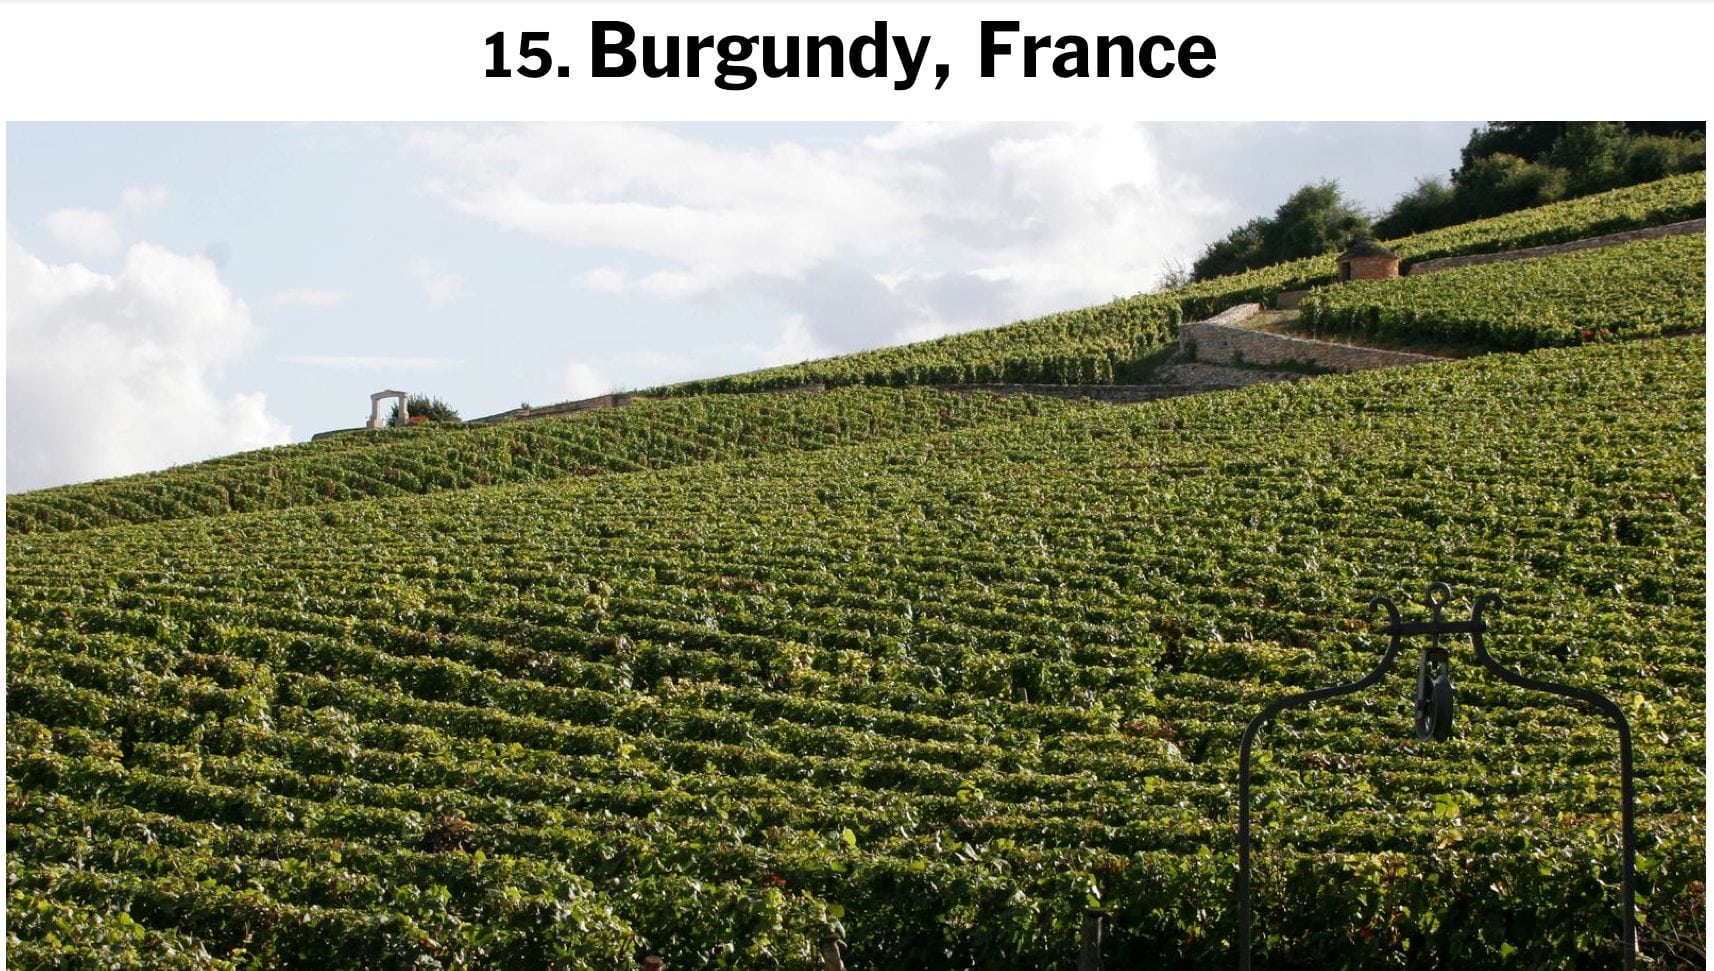 La Bourgogne au top selon le New York Times